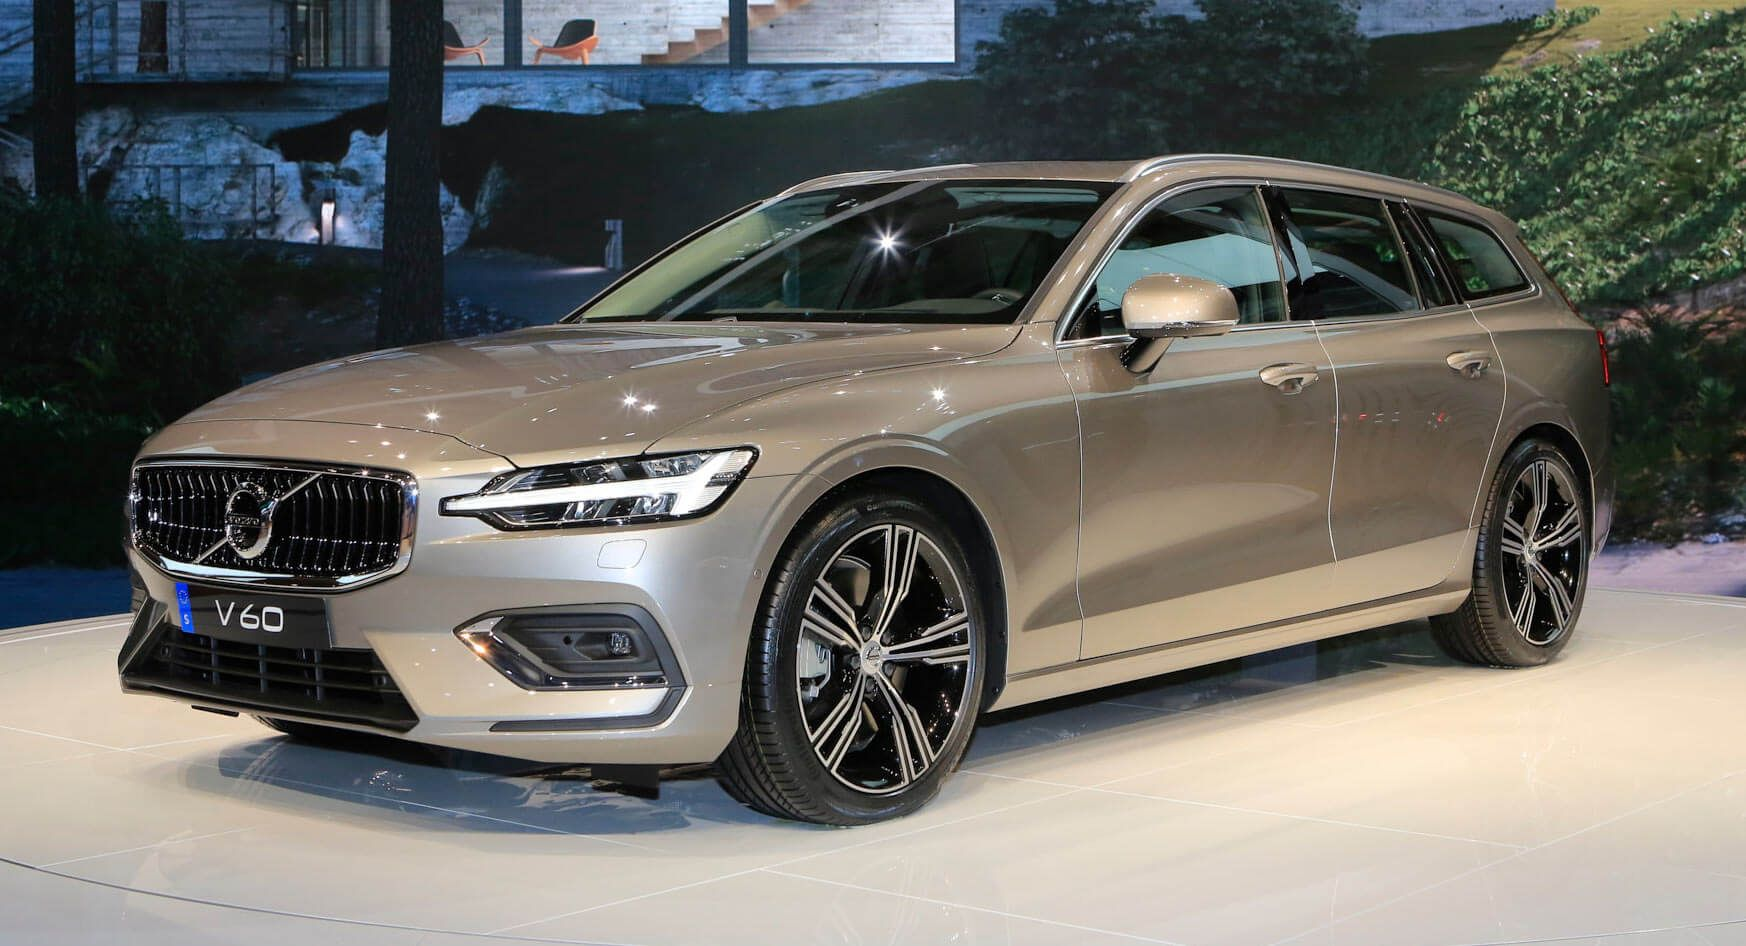 Check Out Volvo's New V60 Wagon From The Geneva Show Floor